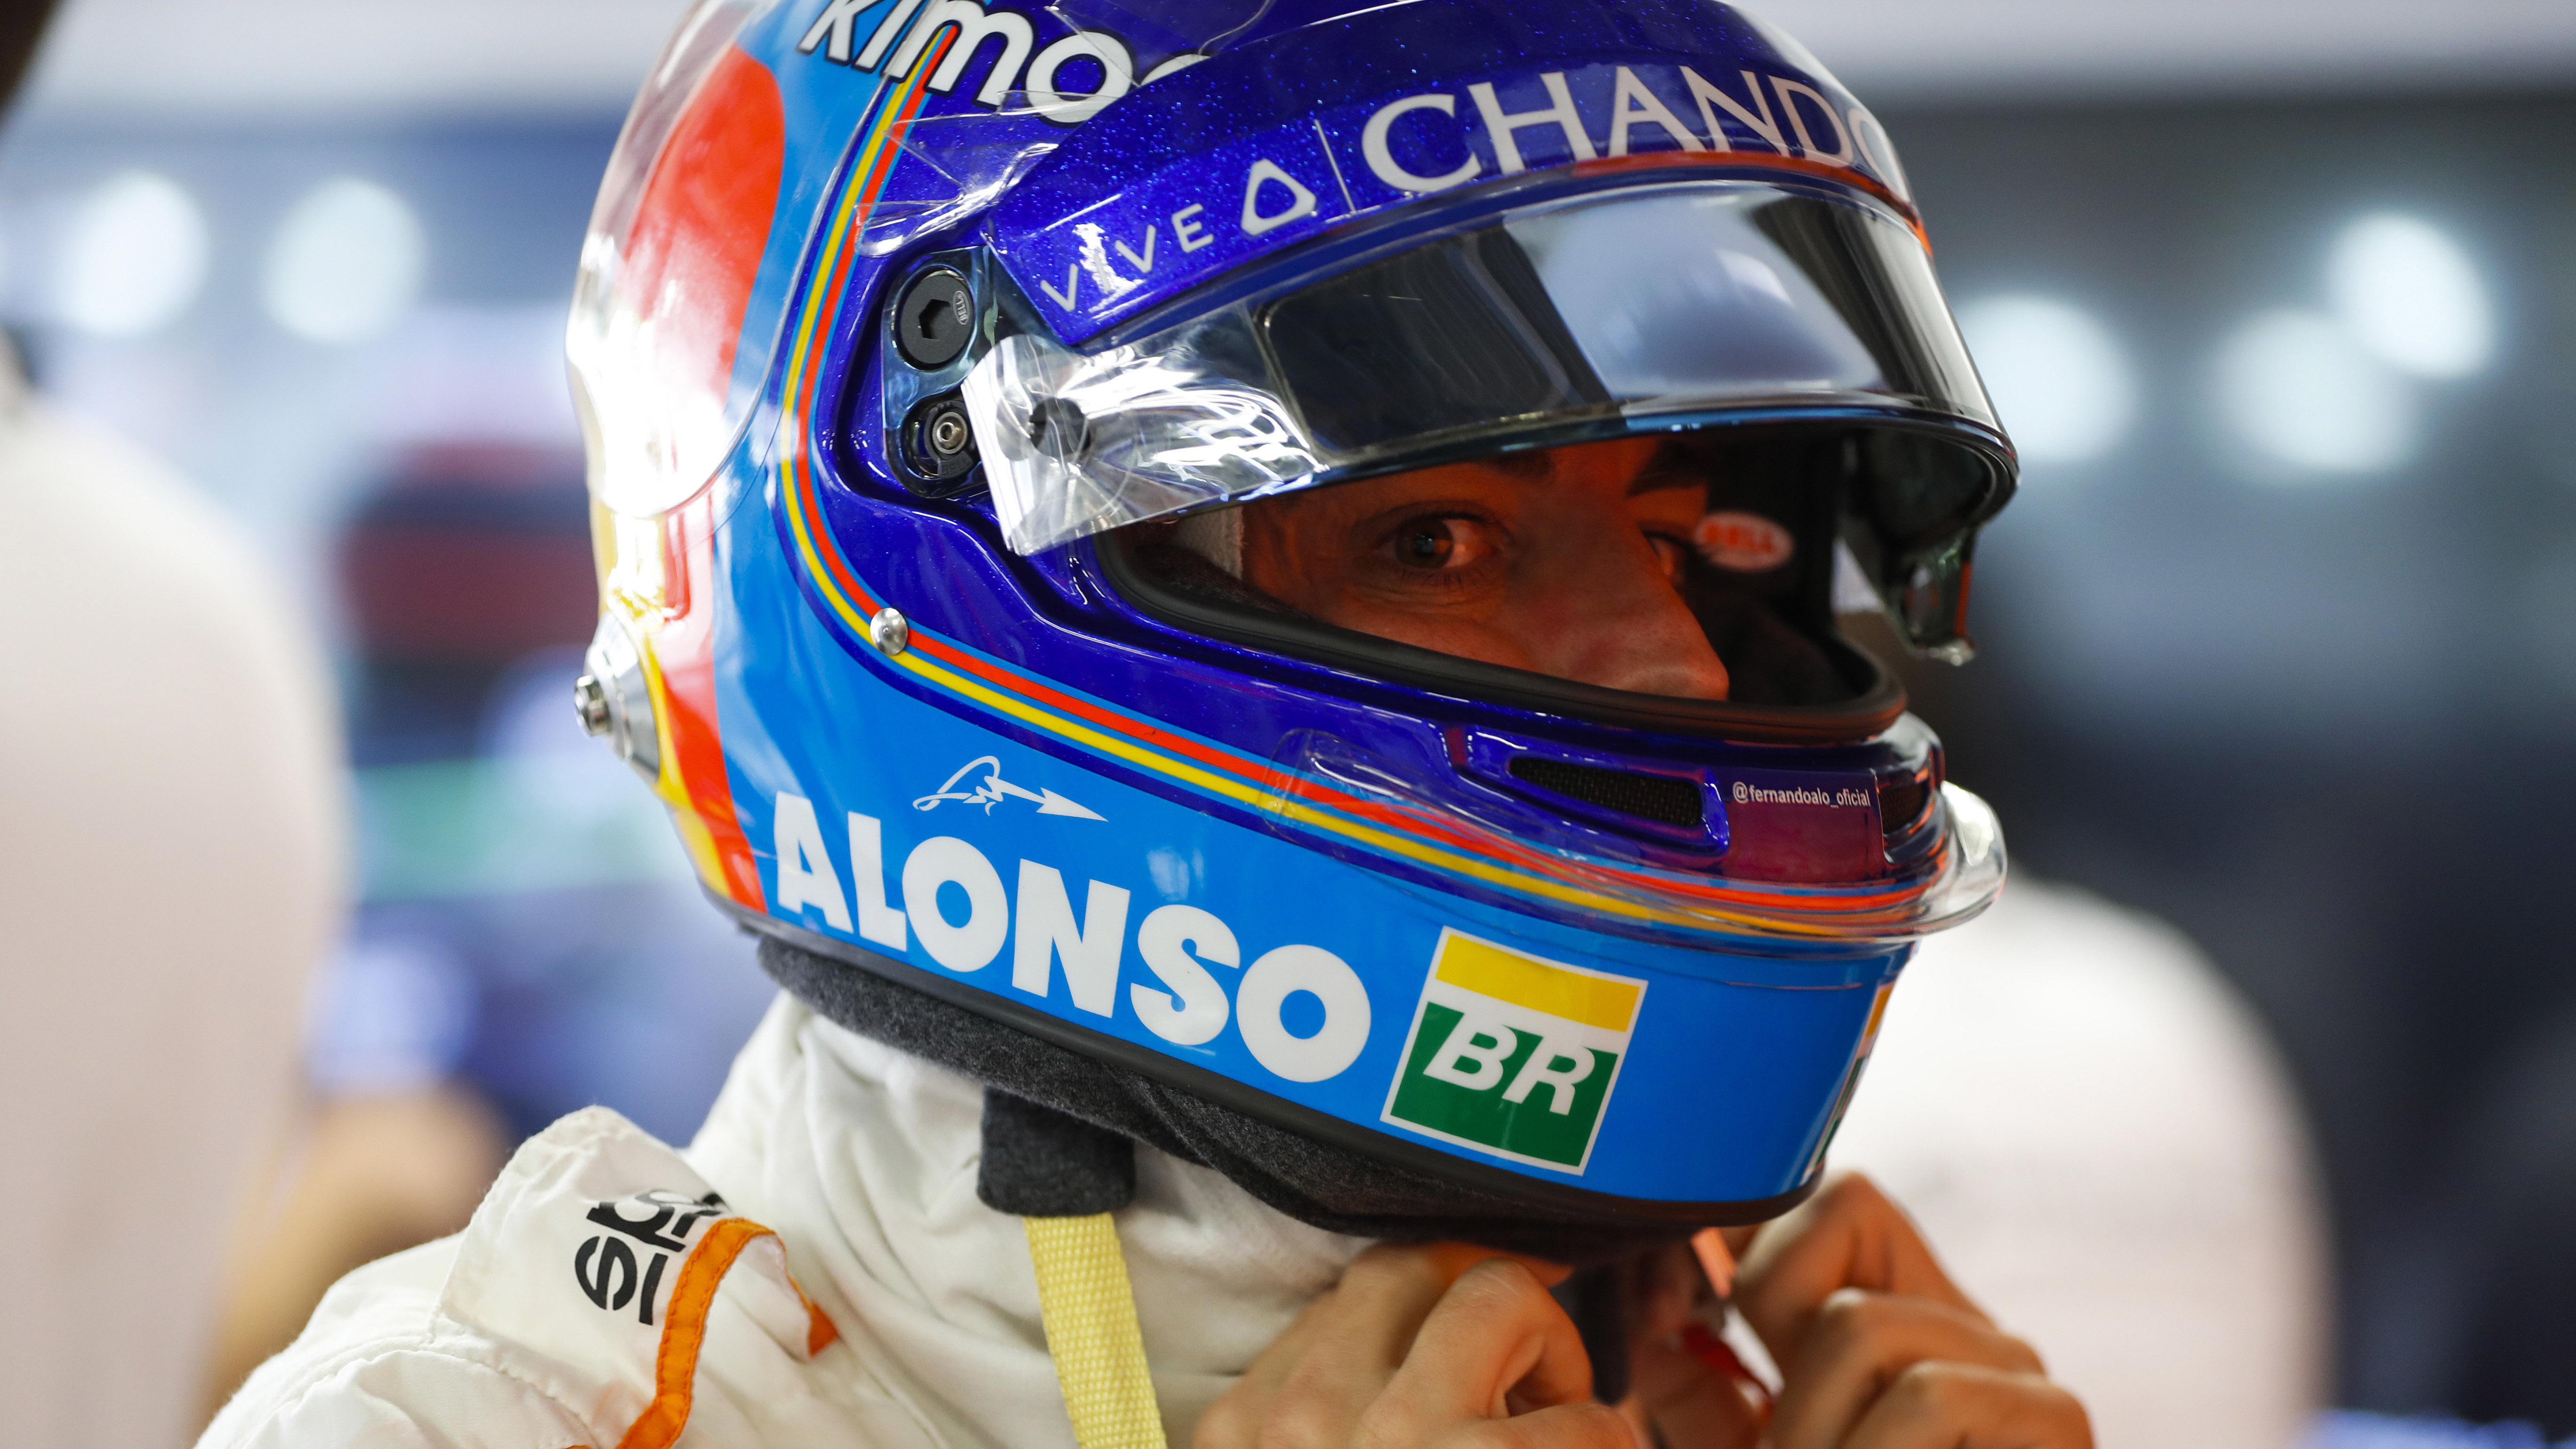 Will Buxton on Fernando Alonso: Behind the visor of one of the greatest enigmas our sport has ever, and likely will ever, know